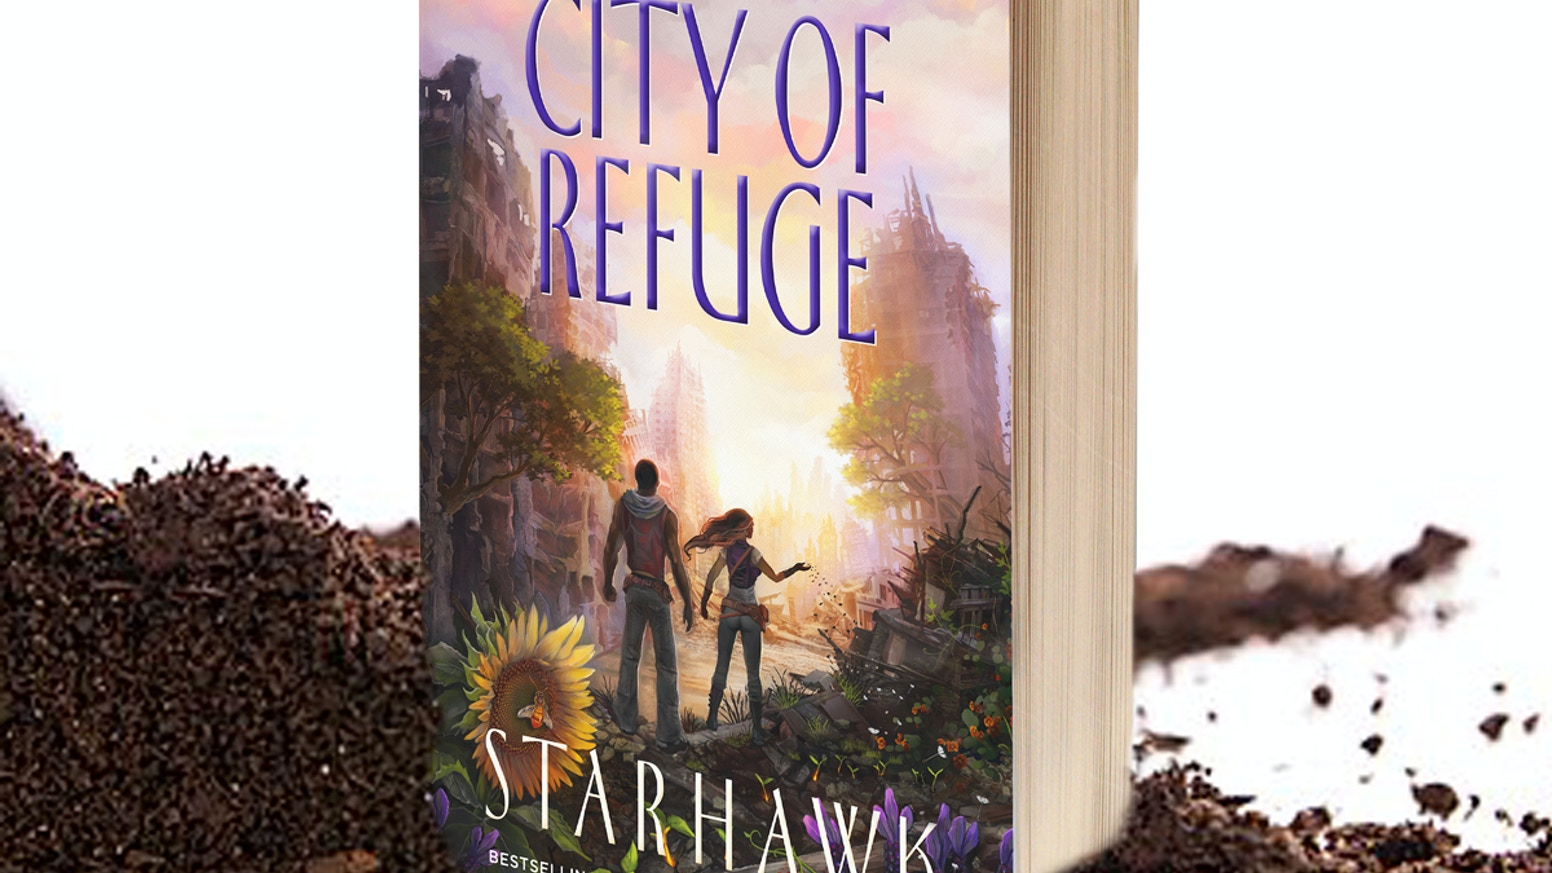 Starhawk's newest epic answers the timely question: how do we build a new world when people are broken by the old?